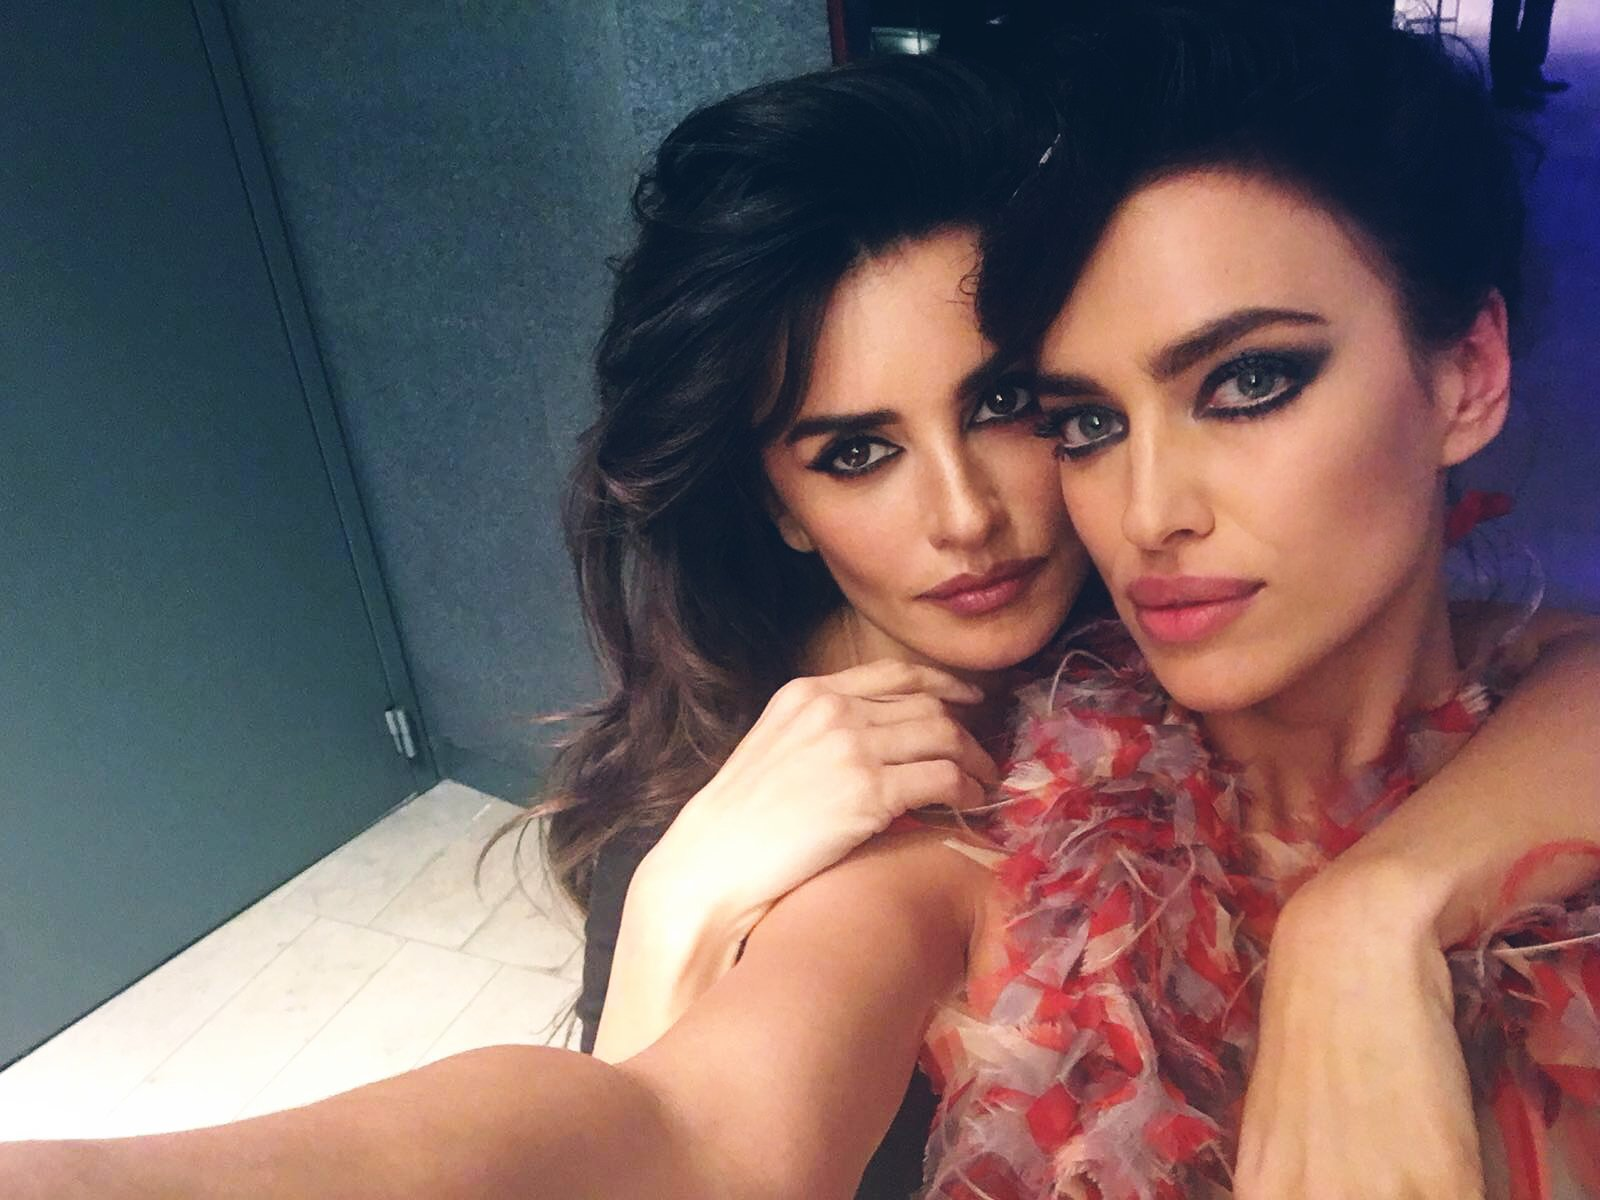 RT @voguemagazine: From backstage to Blue Steel—@theirishayk's personal photos from the #Zoolander2 premiere: https://t.co/yulmEIUuJ4 https…